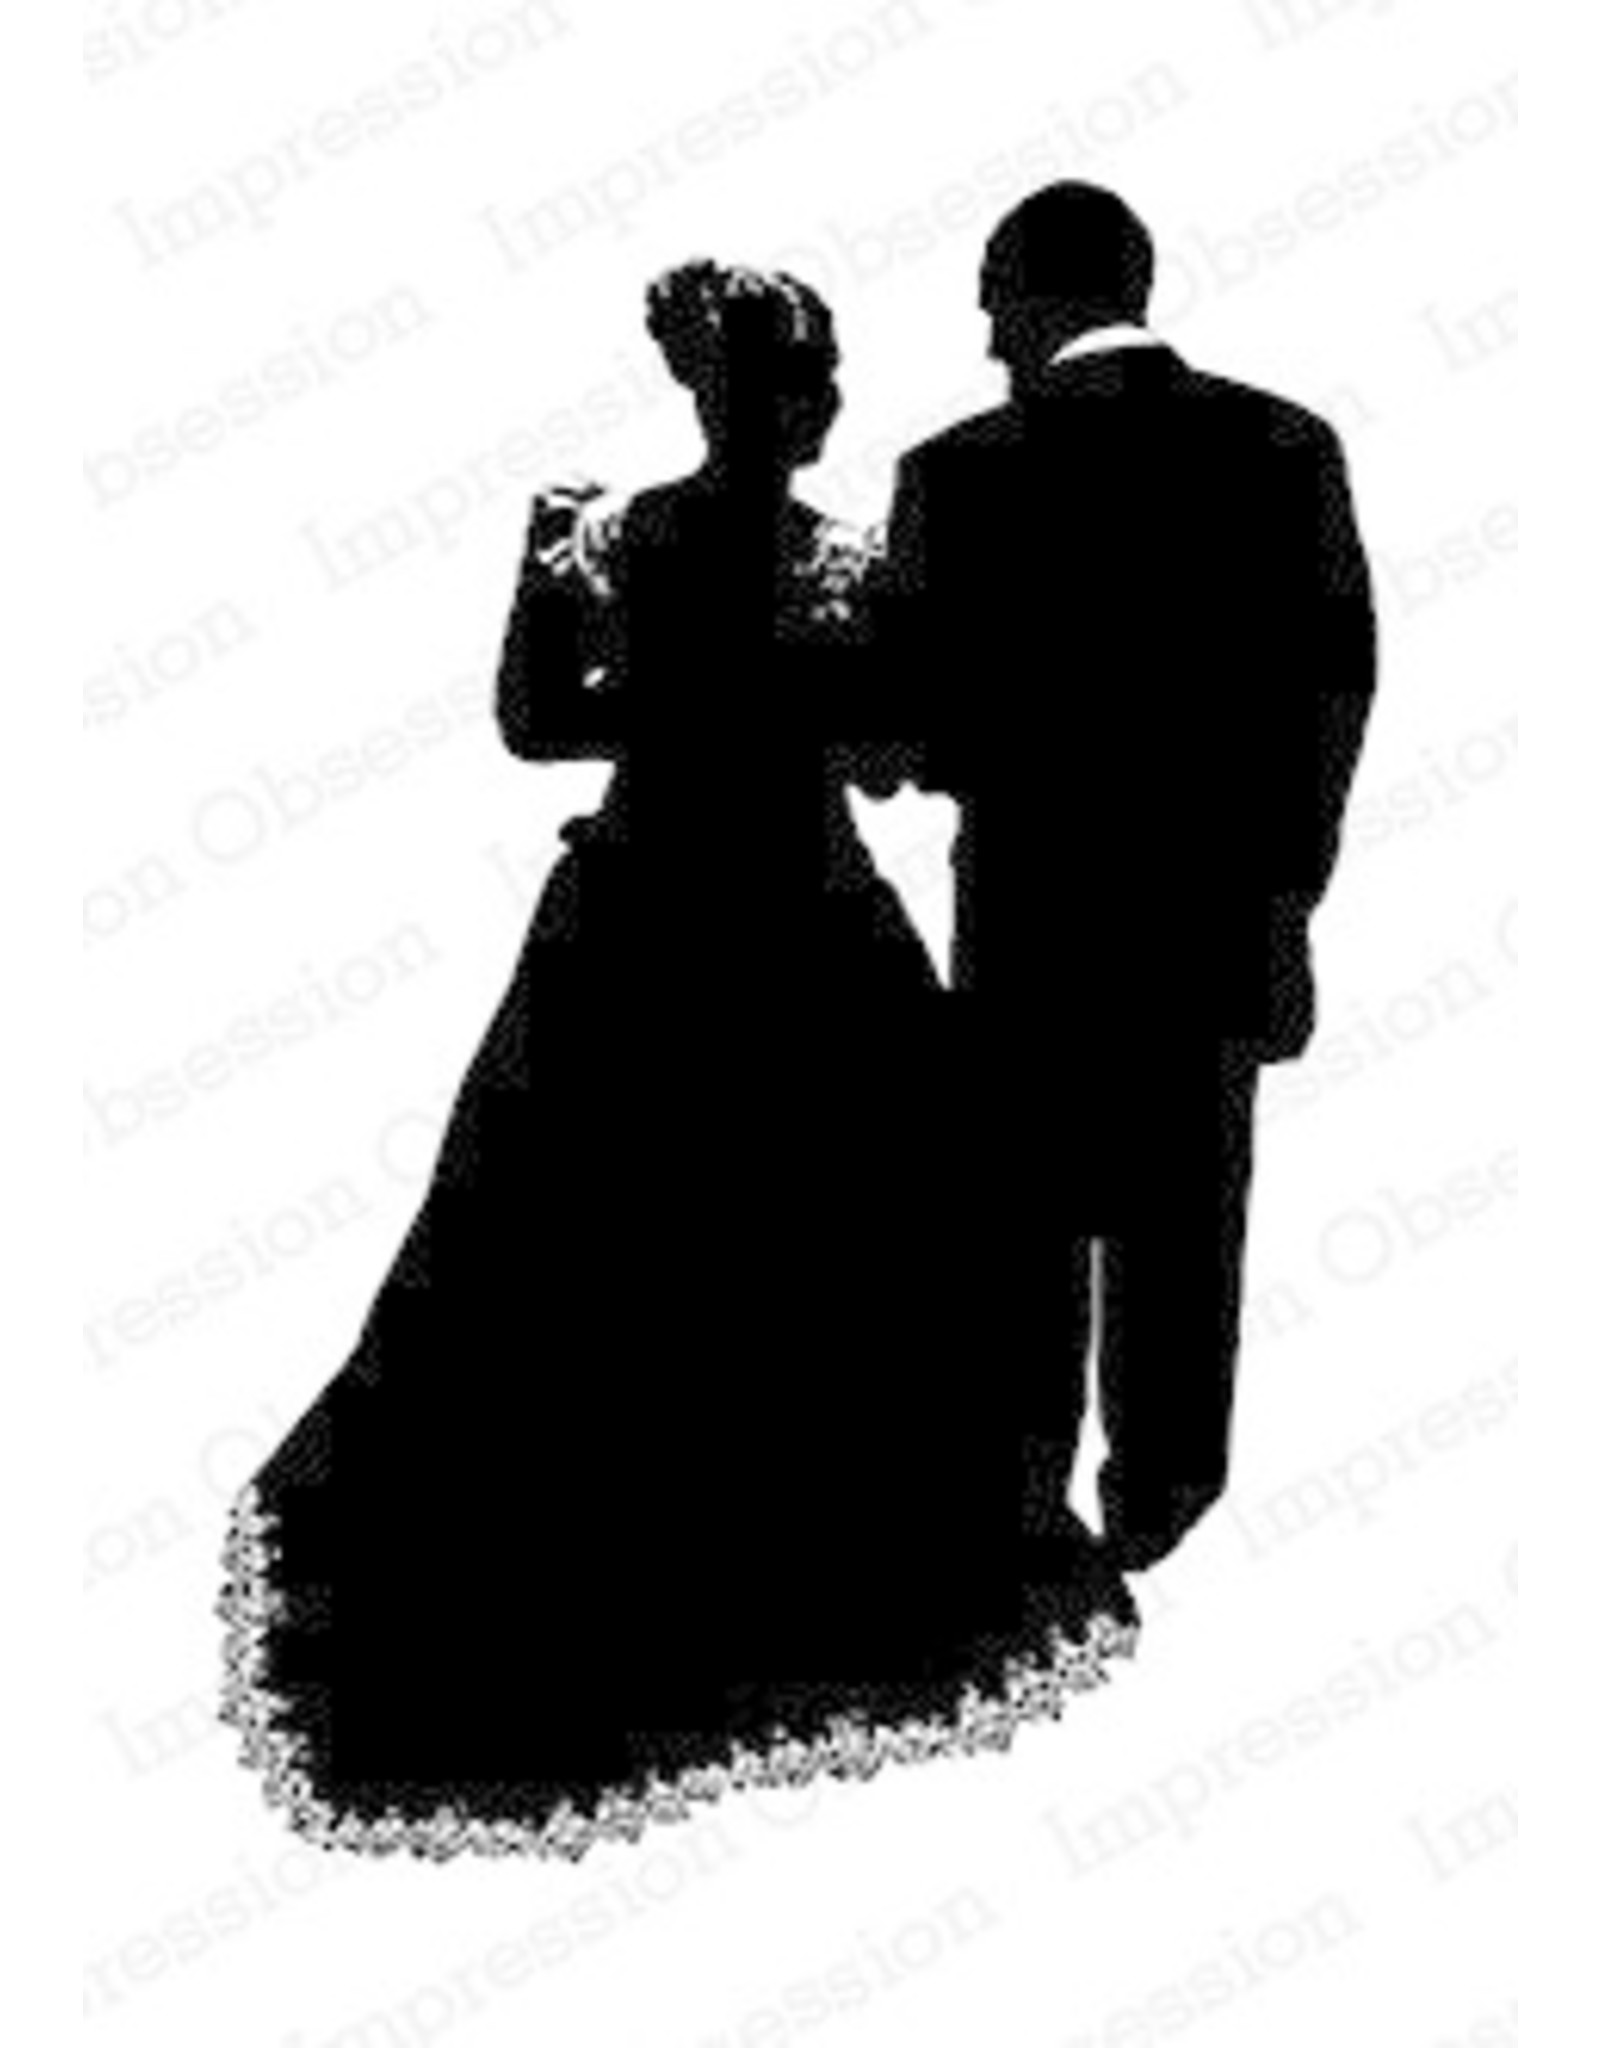 Impression Obsession Wedding Silhouette - Cling Stamp